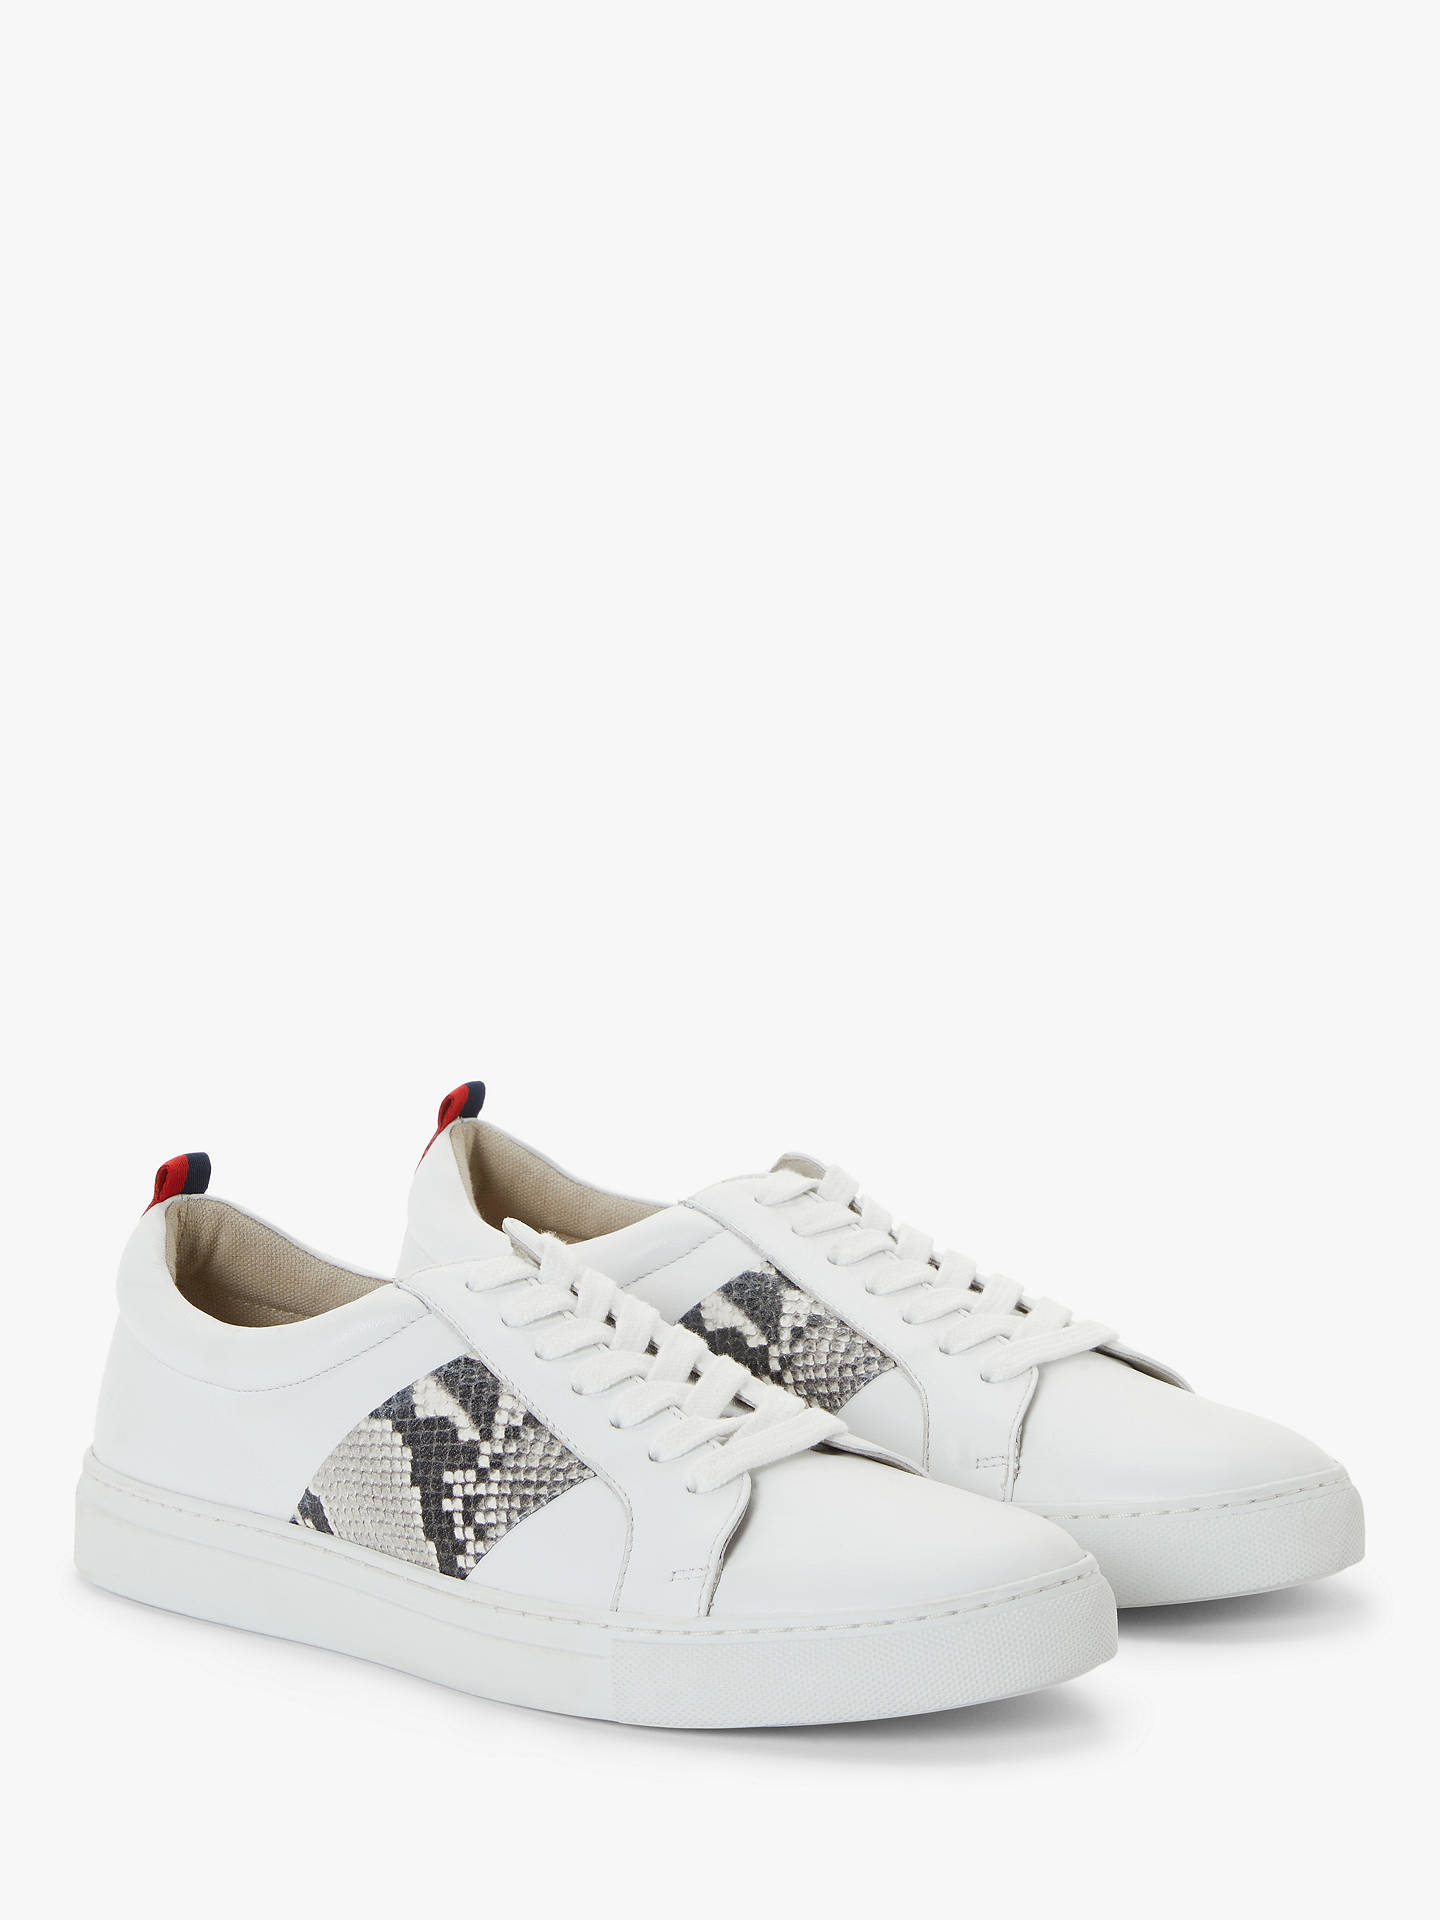 Buy Boden Classic Leather Trainers, White/Snakeprint, 8 Online at johnlewis.com